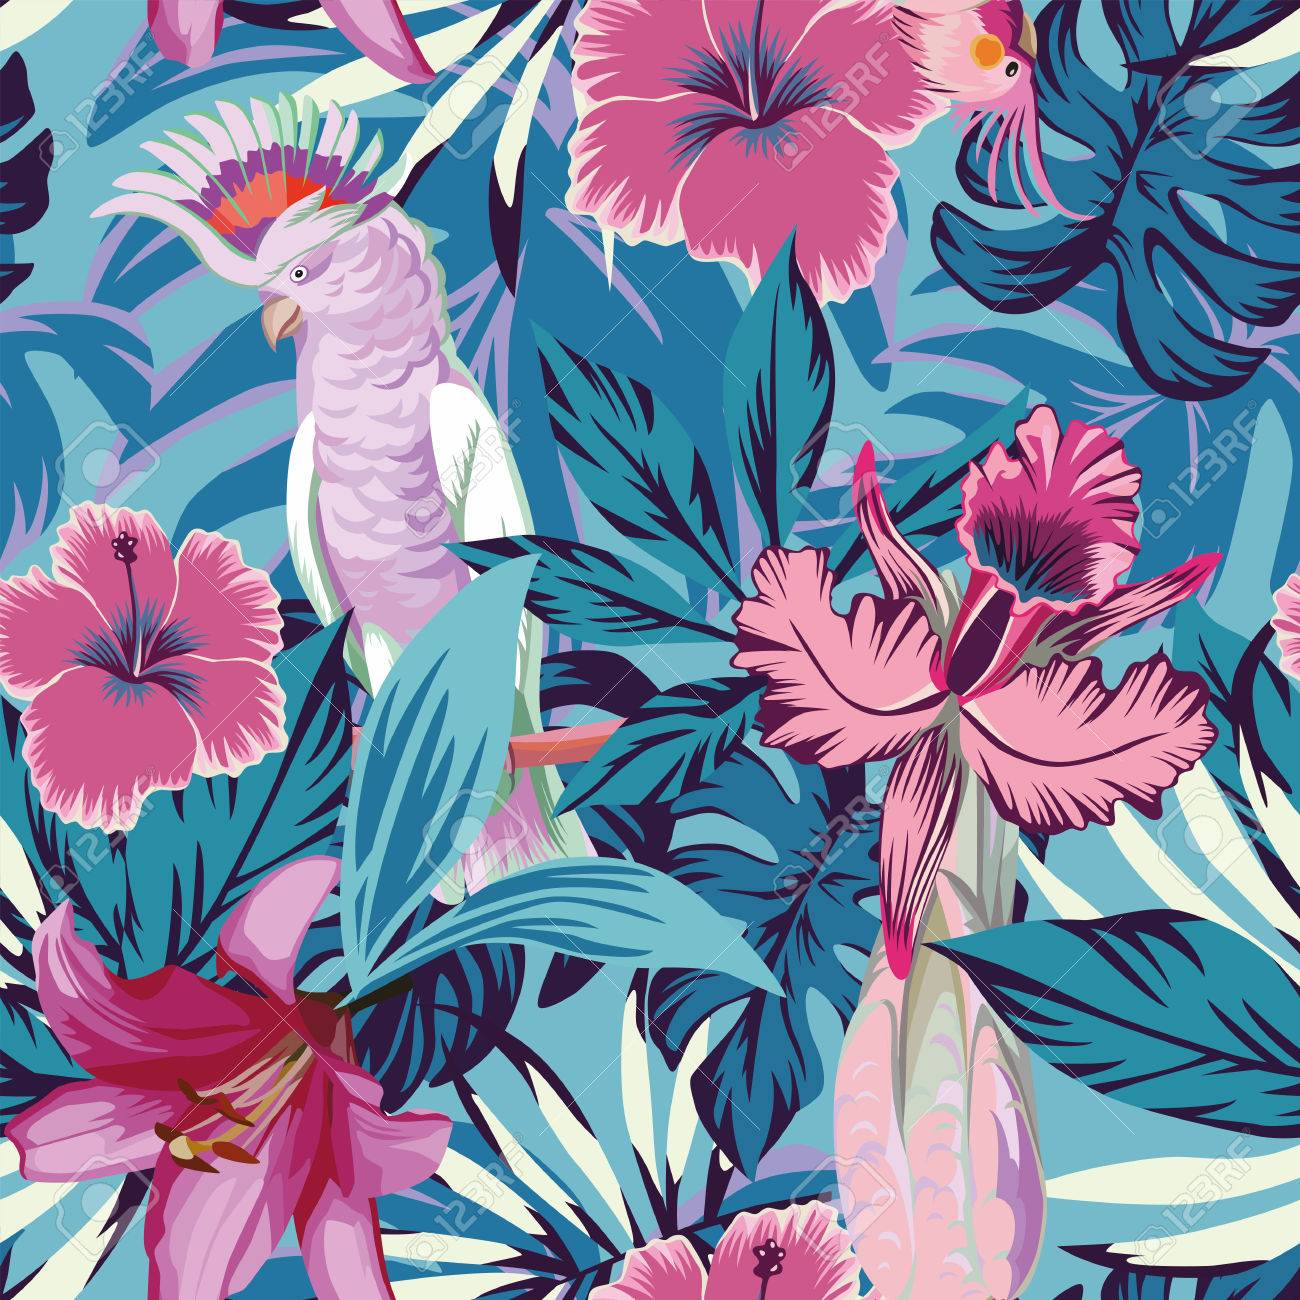 Pink parrot tropical flowers and plants blue background seamless pink parrot tropical flowers and plants blue background seamless beach vector wallpaper stock vector mightylinksfo